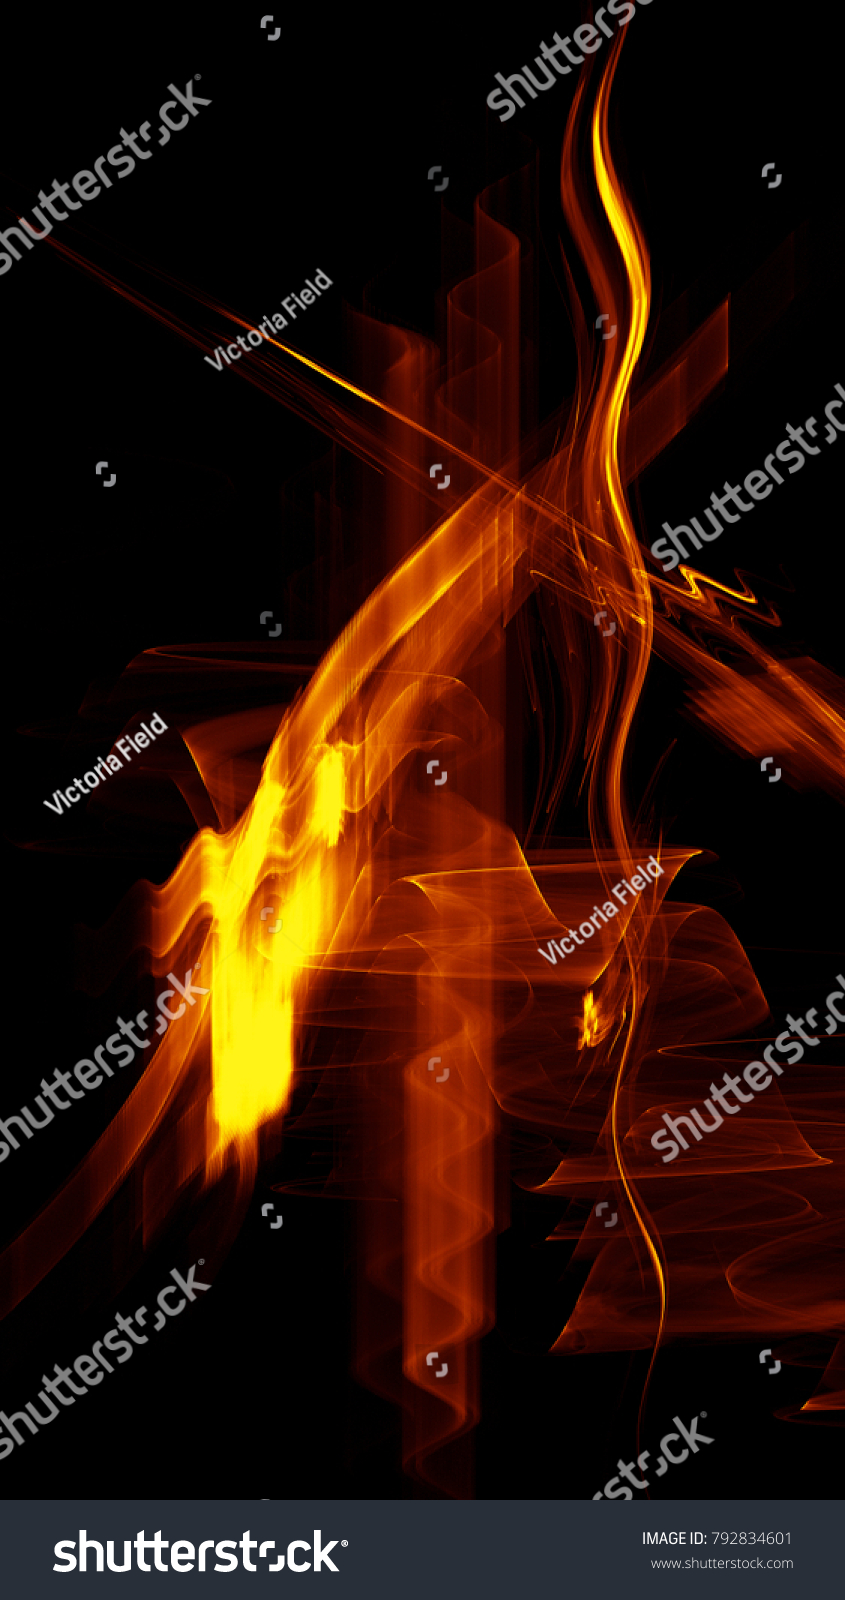 Must see Wallpaper Fire Gold - stock-photo-abstract-gold-fire-cellphone-wallpaper-fractal-background-792834601  Picture_801392 .jpg